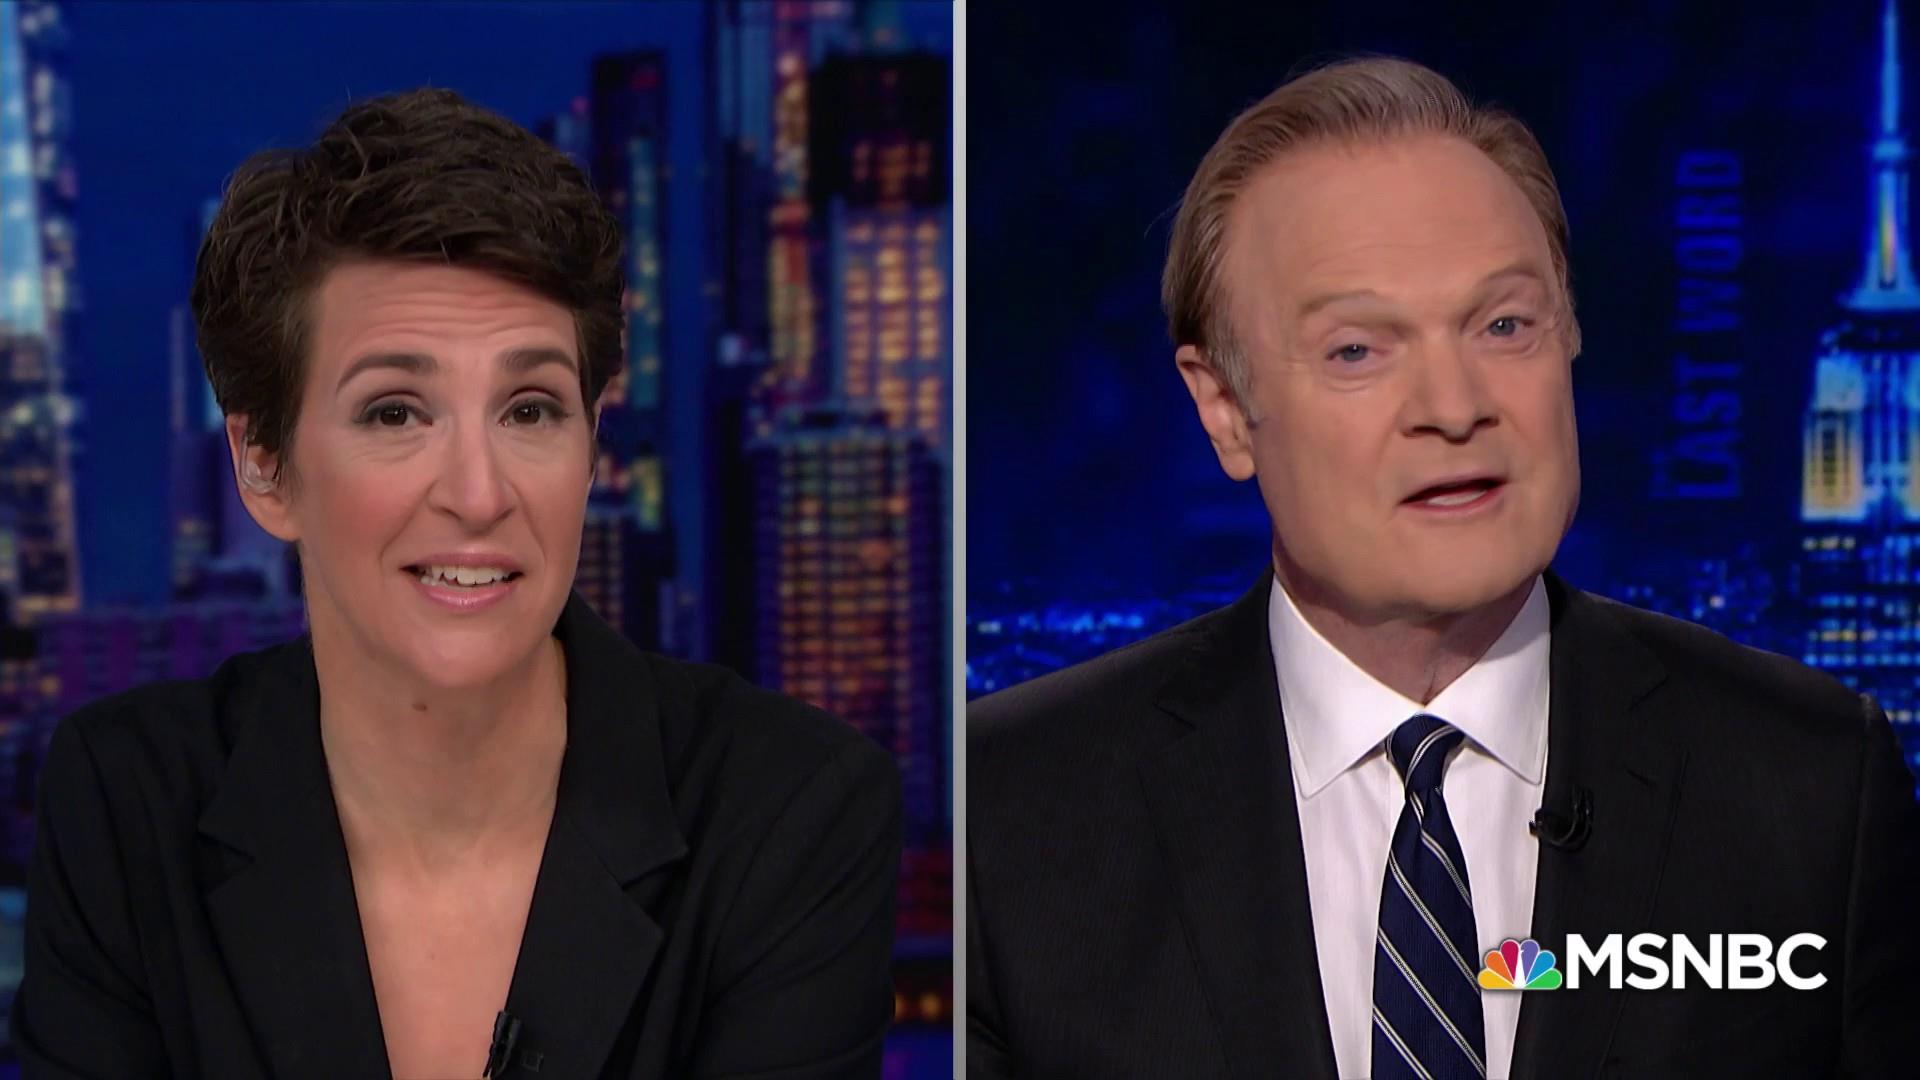 Maddow: 'It's a dark time with the president leading this way'